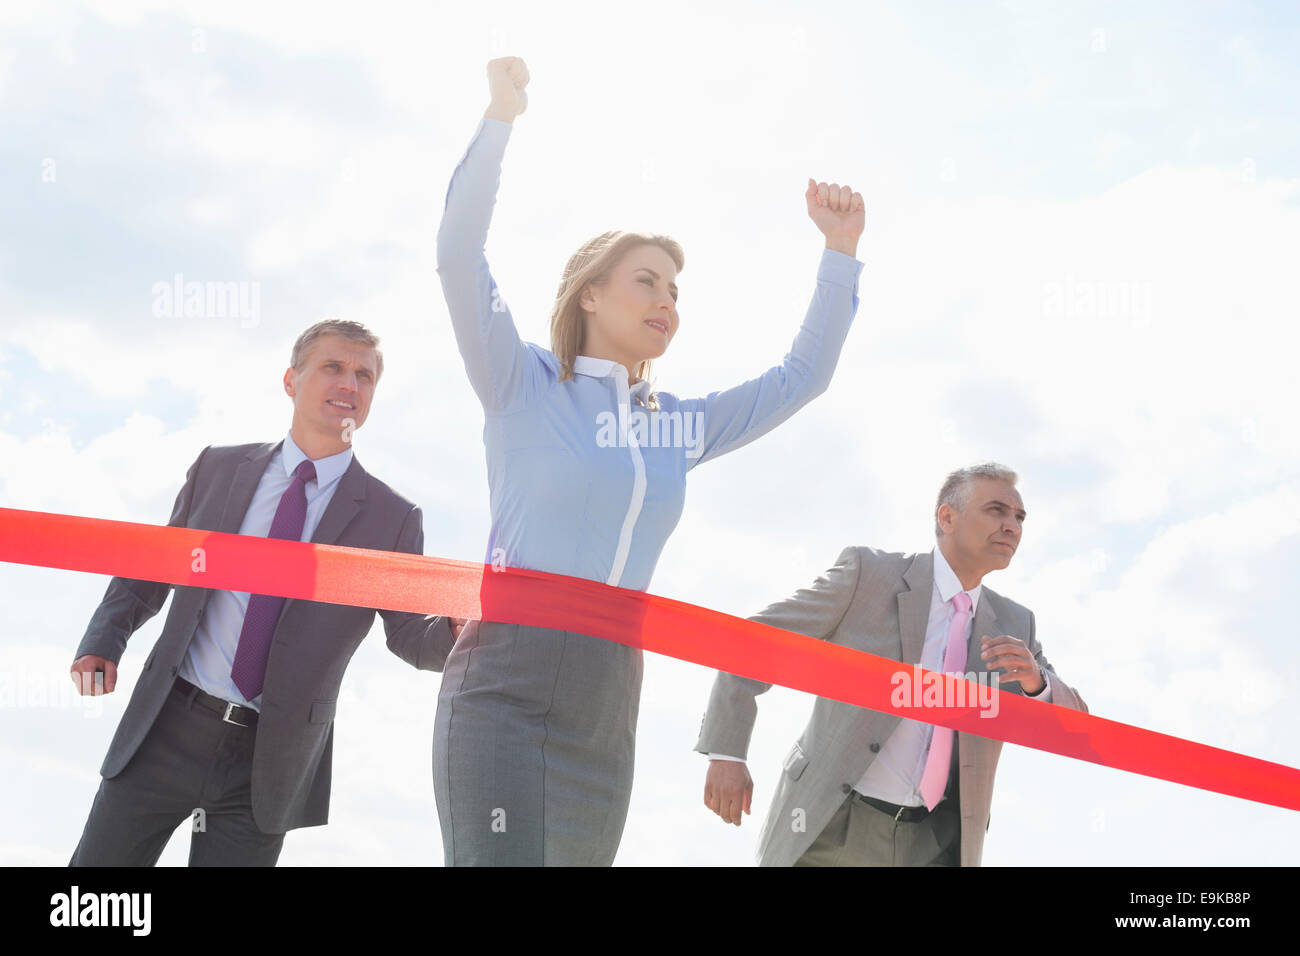 Businesswoman crossing finishing line with colleagues in background - Stock Image